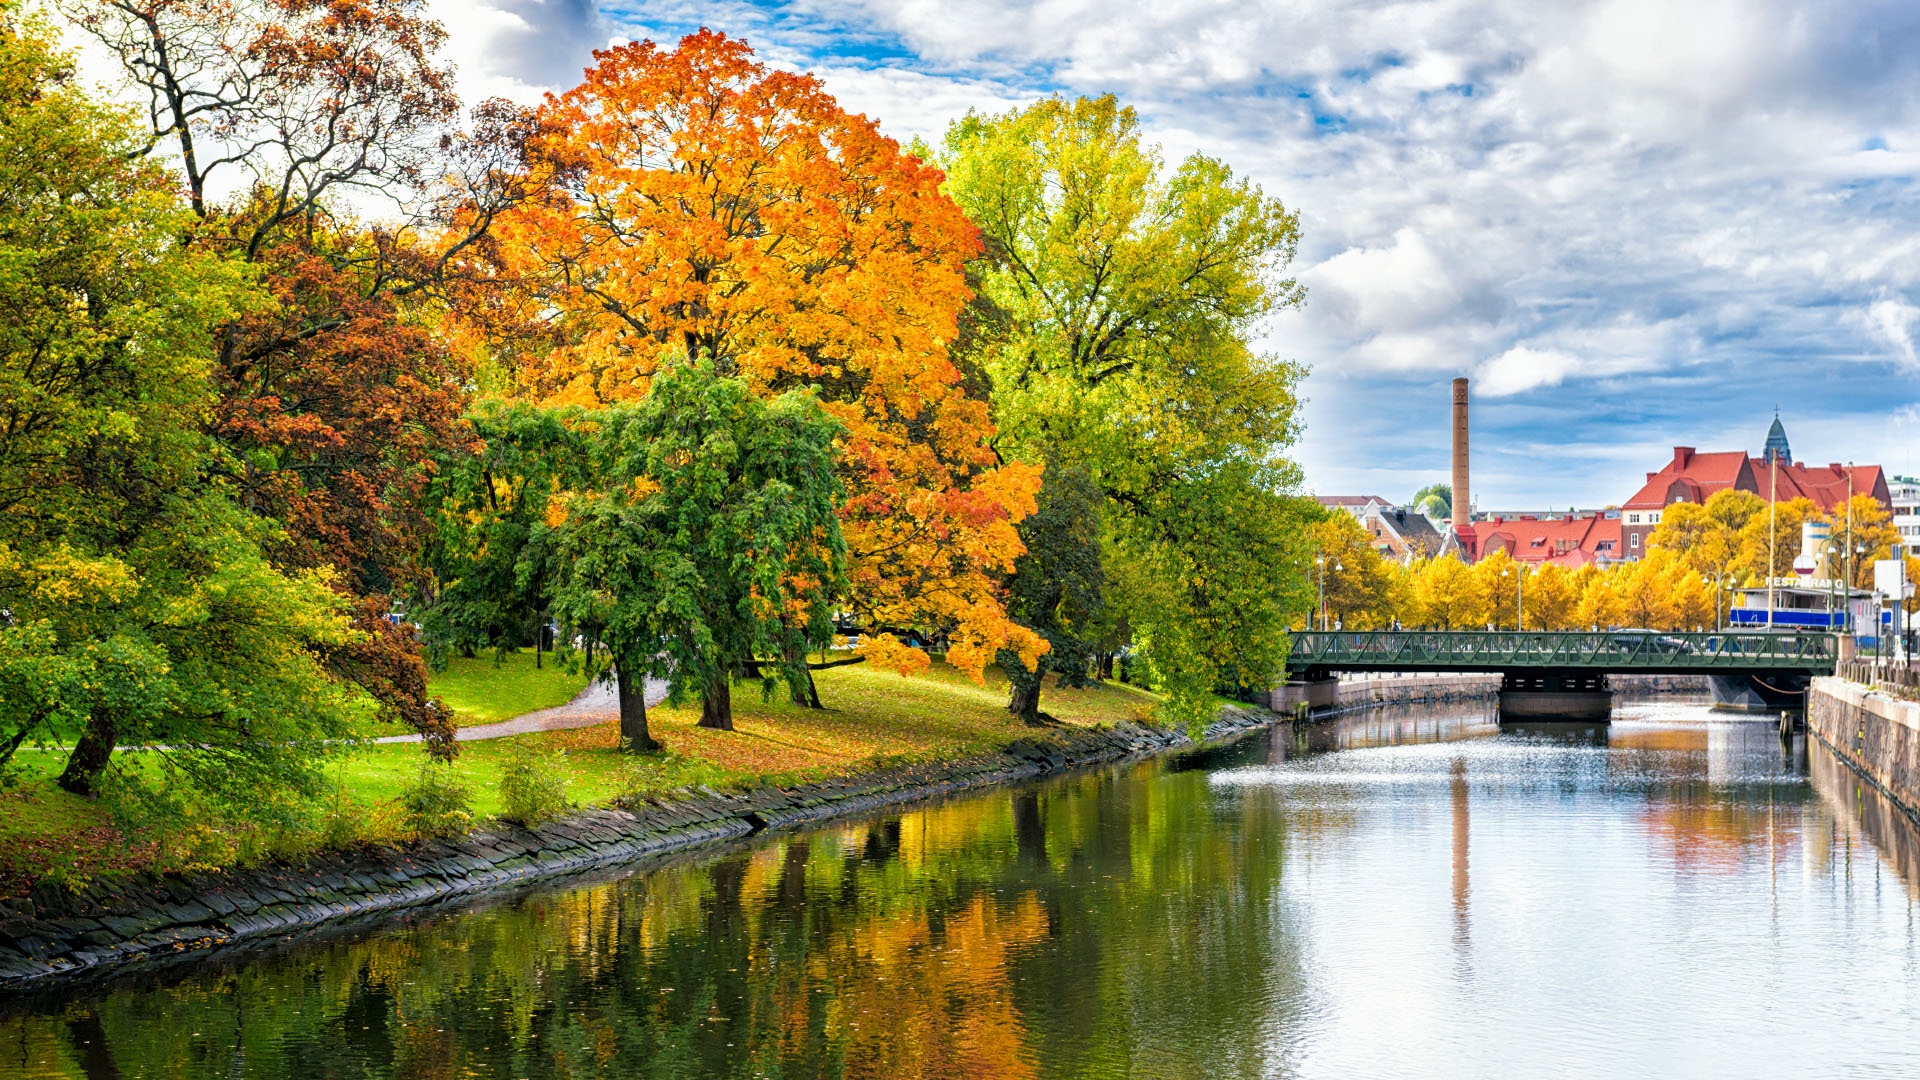 Autumn in Sweden Photography Wallpaper 20